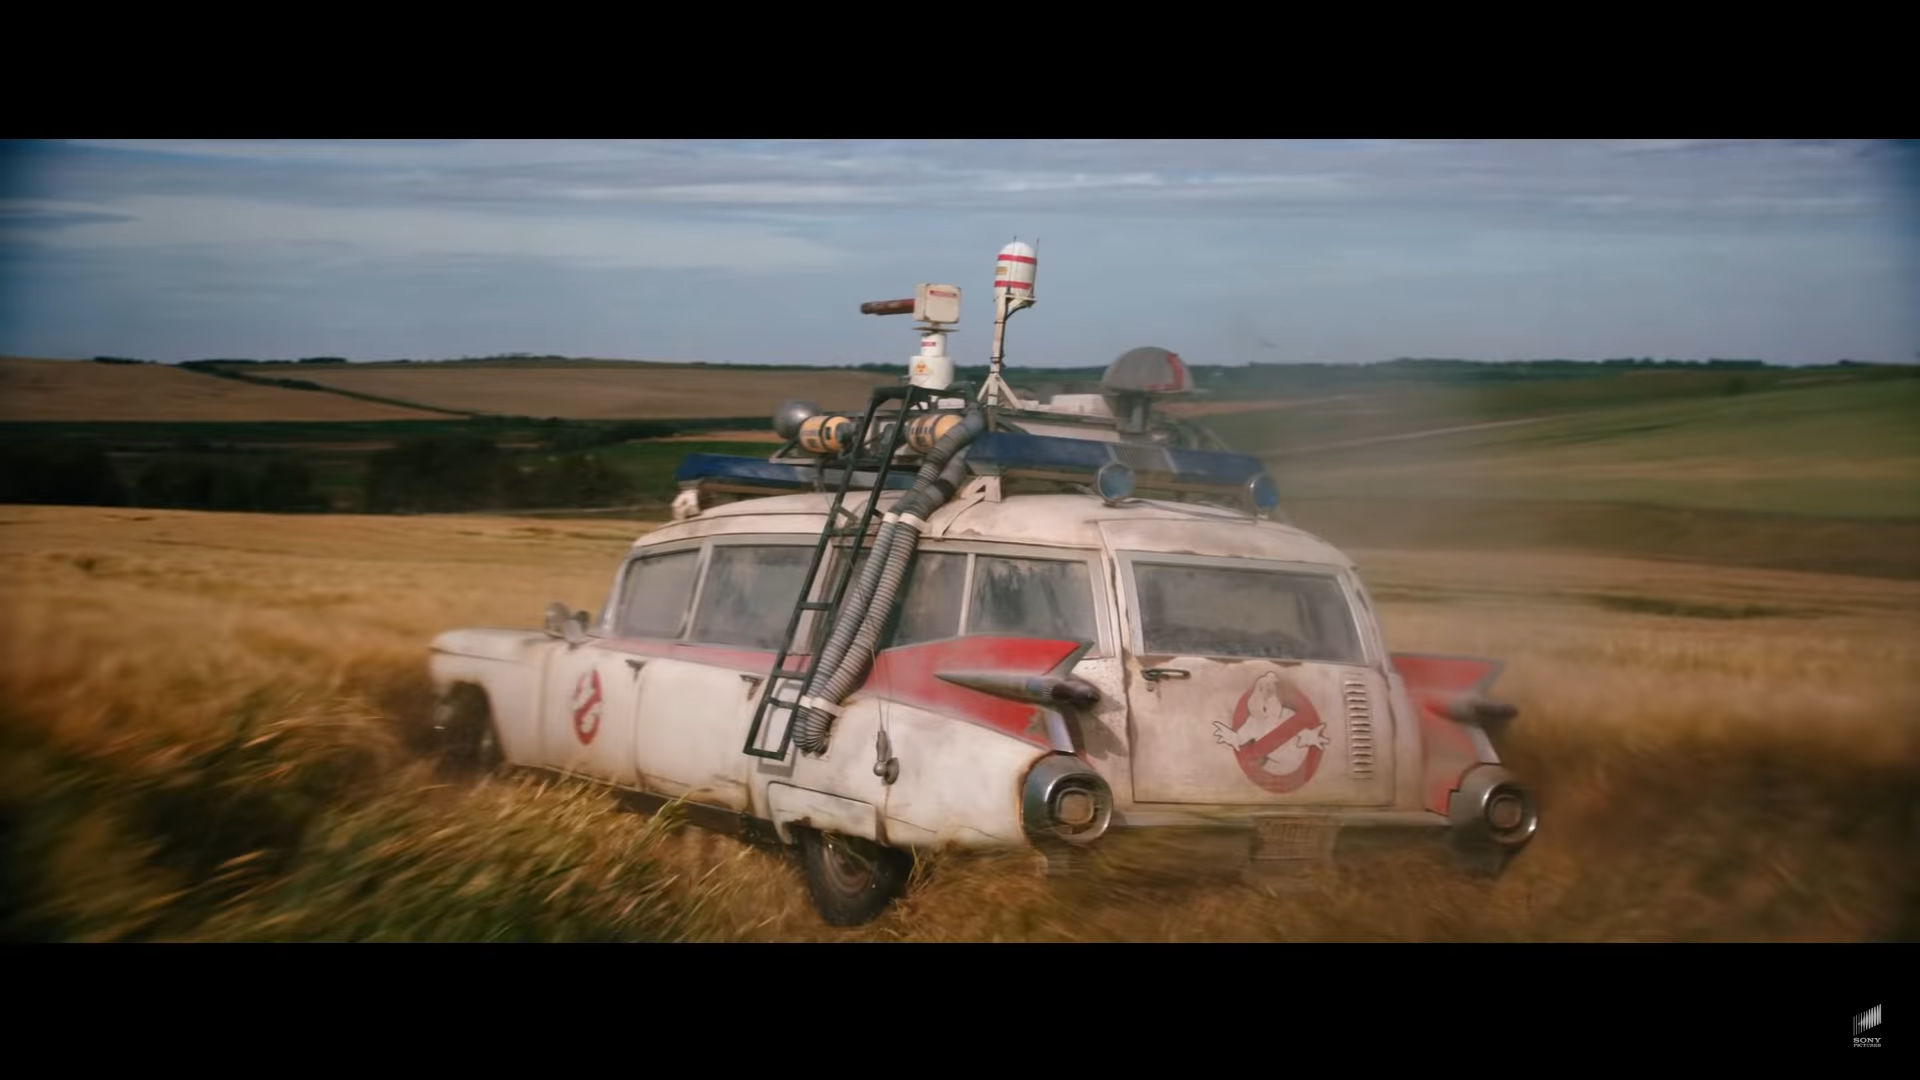 Ghostbusters Ecto-1 3 4 achter rijder drift